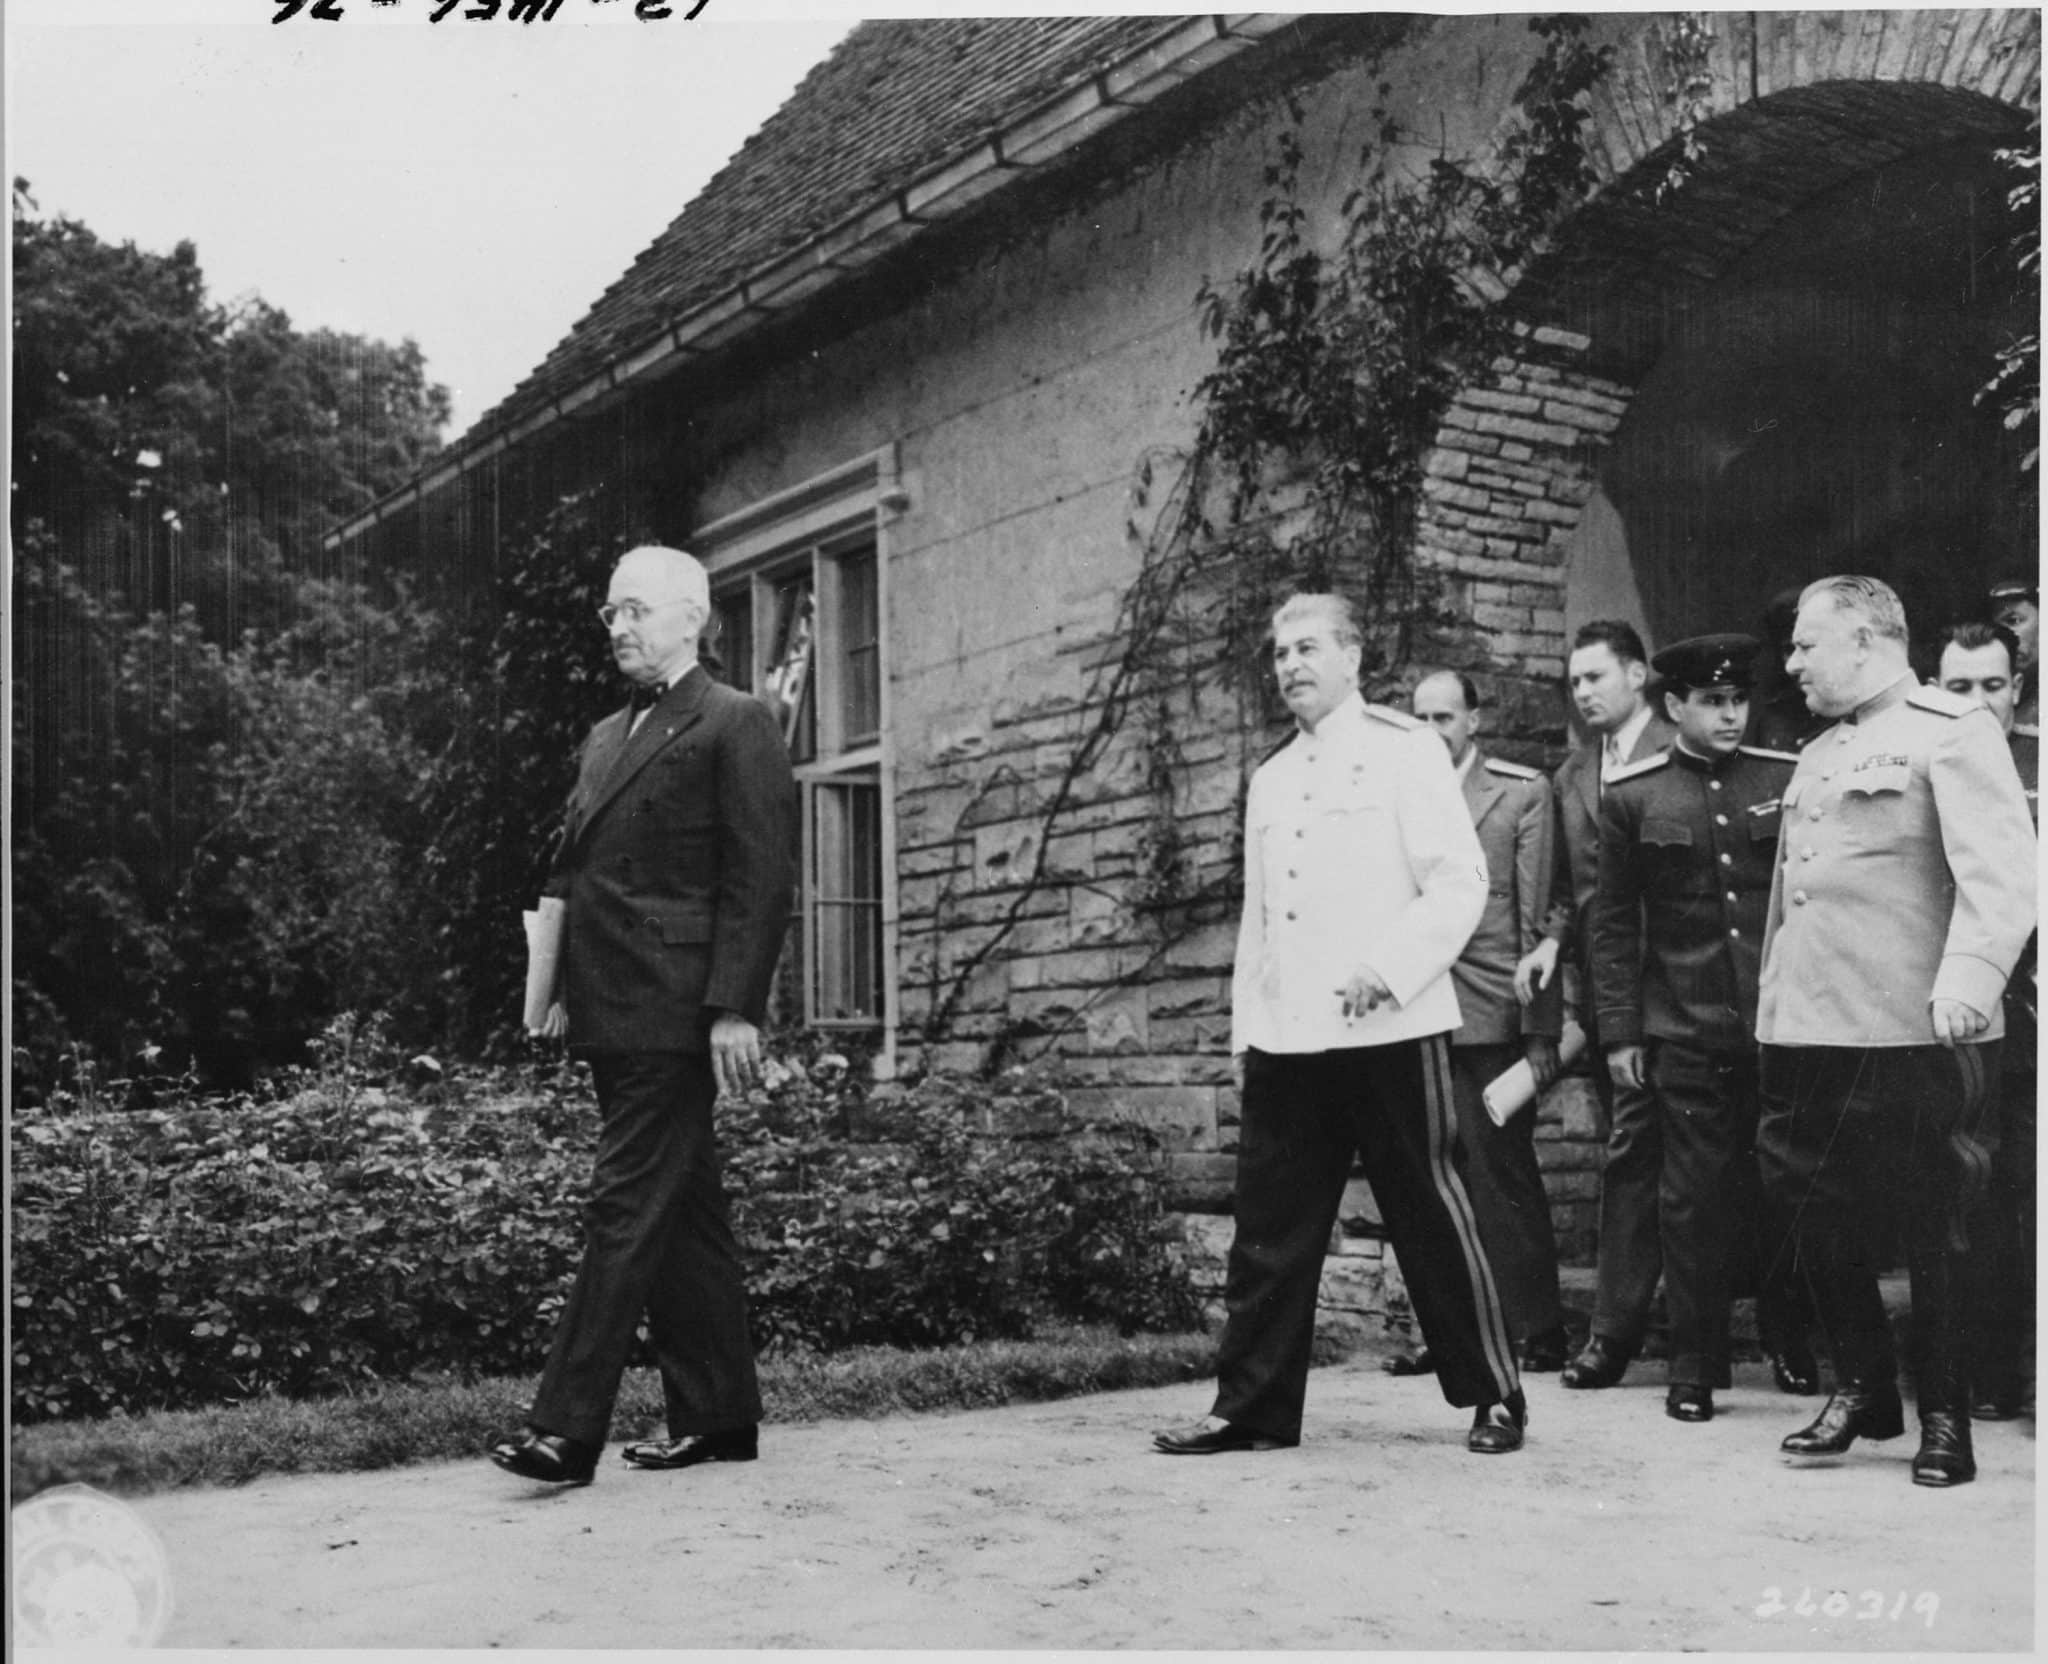 The Potsdam Conference - August 2nd 1945 - Truman and Stalin leave Schloss Cecilienhof and the Potsdam Conference for a final time